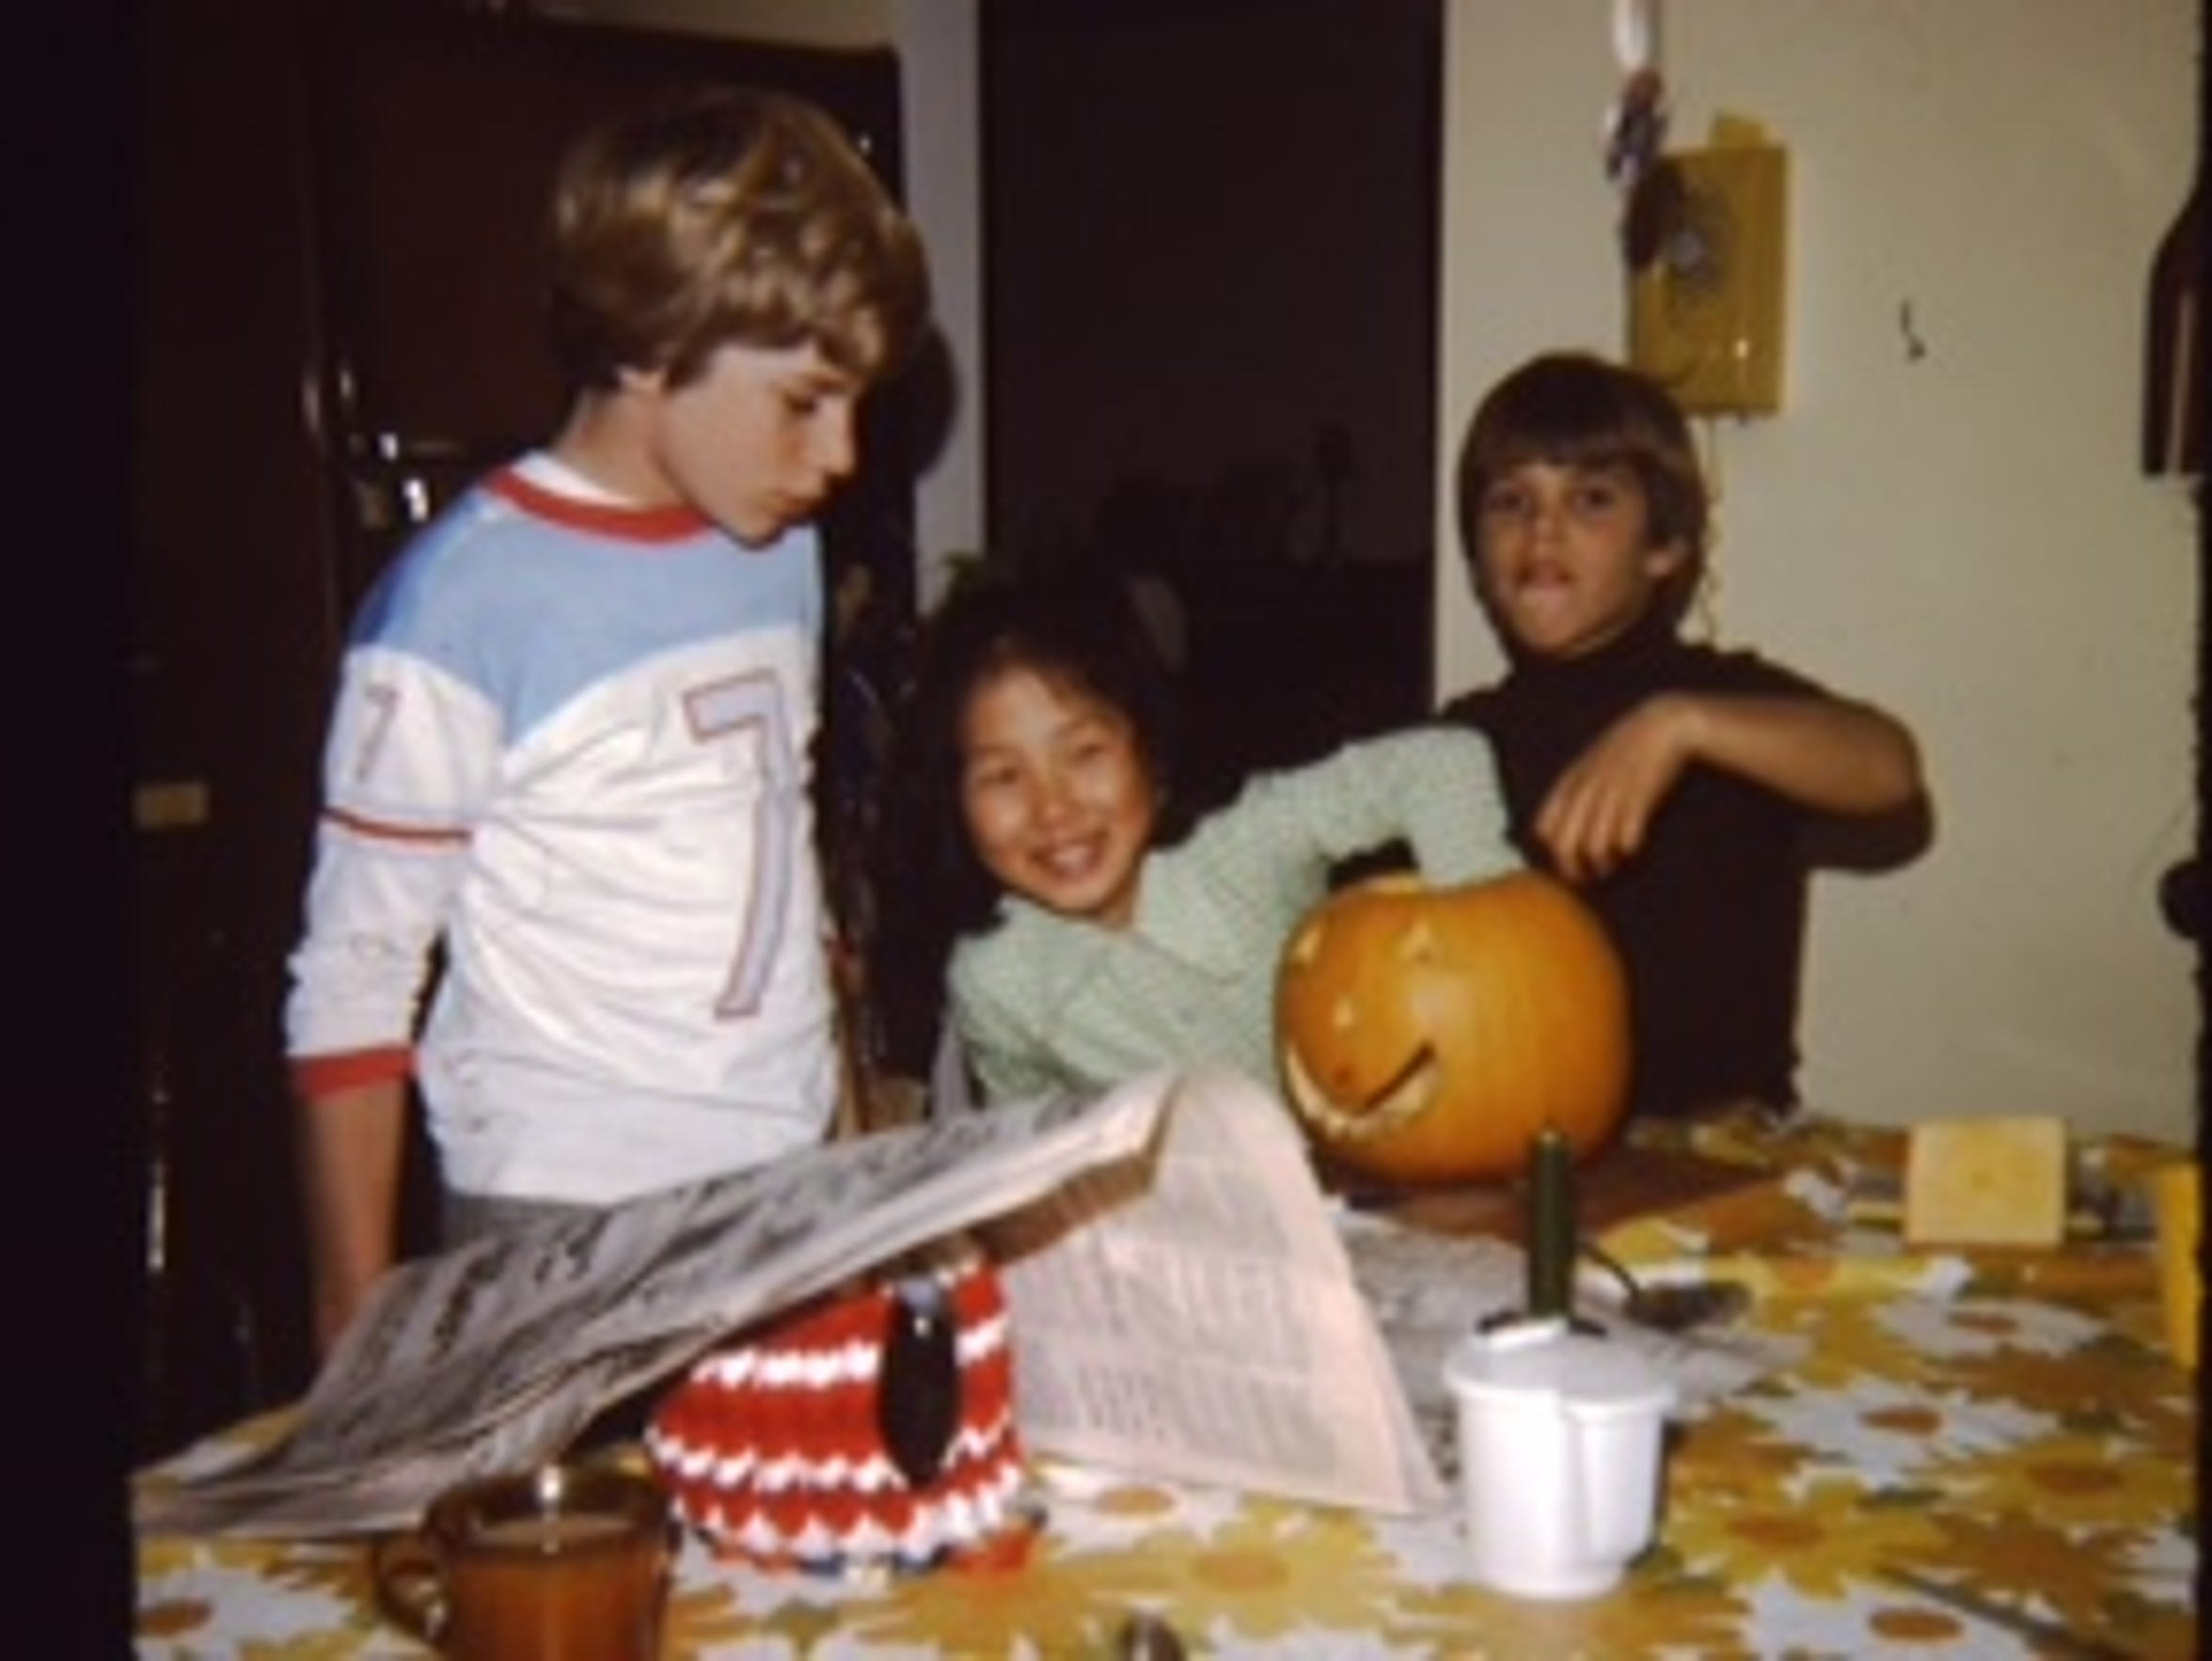 A young Kim Pegula, center, carving pumpkins with her